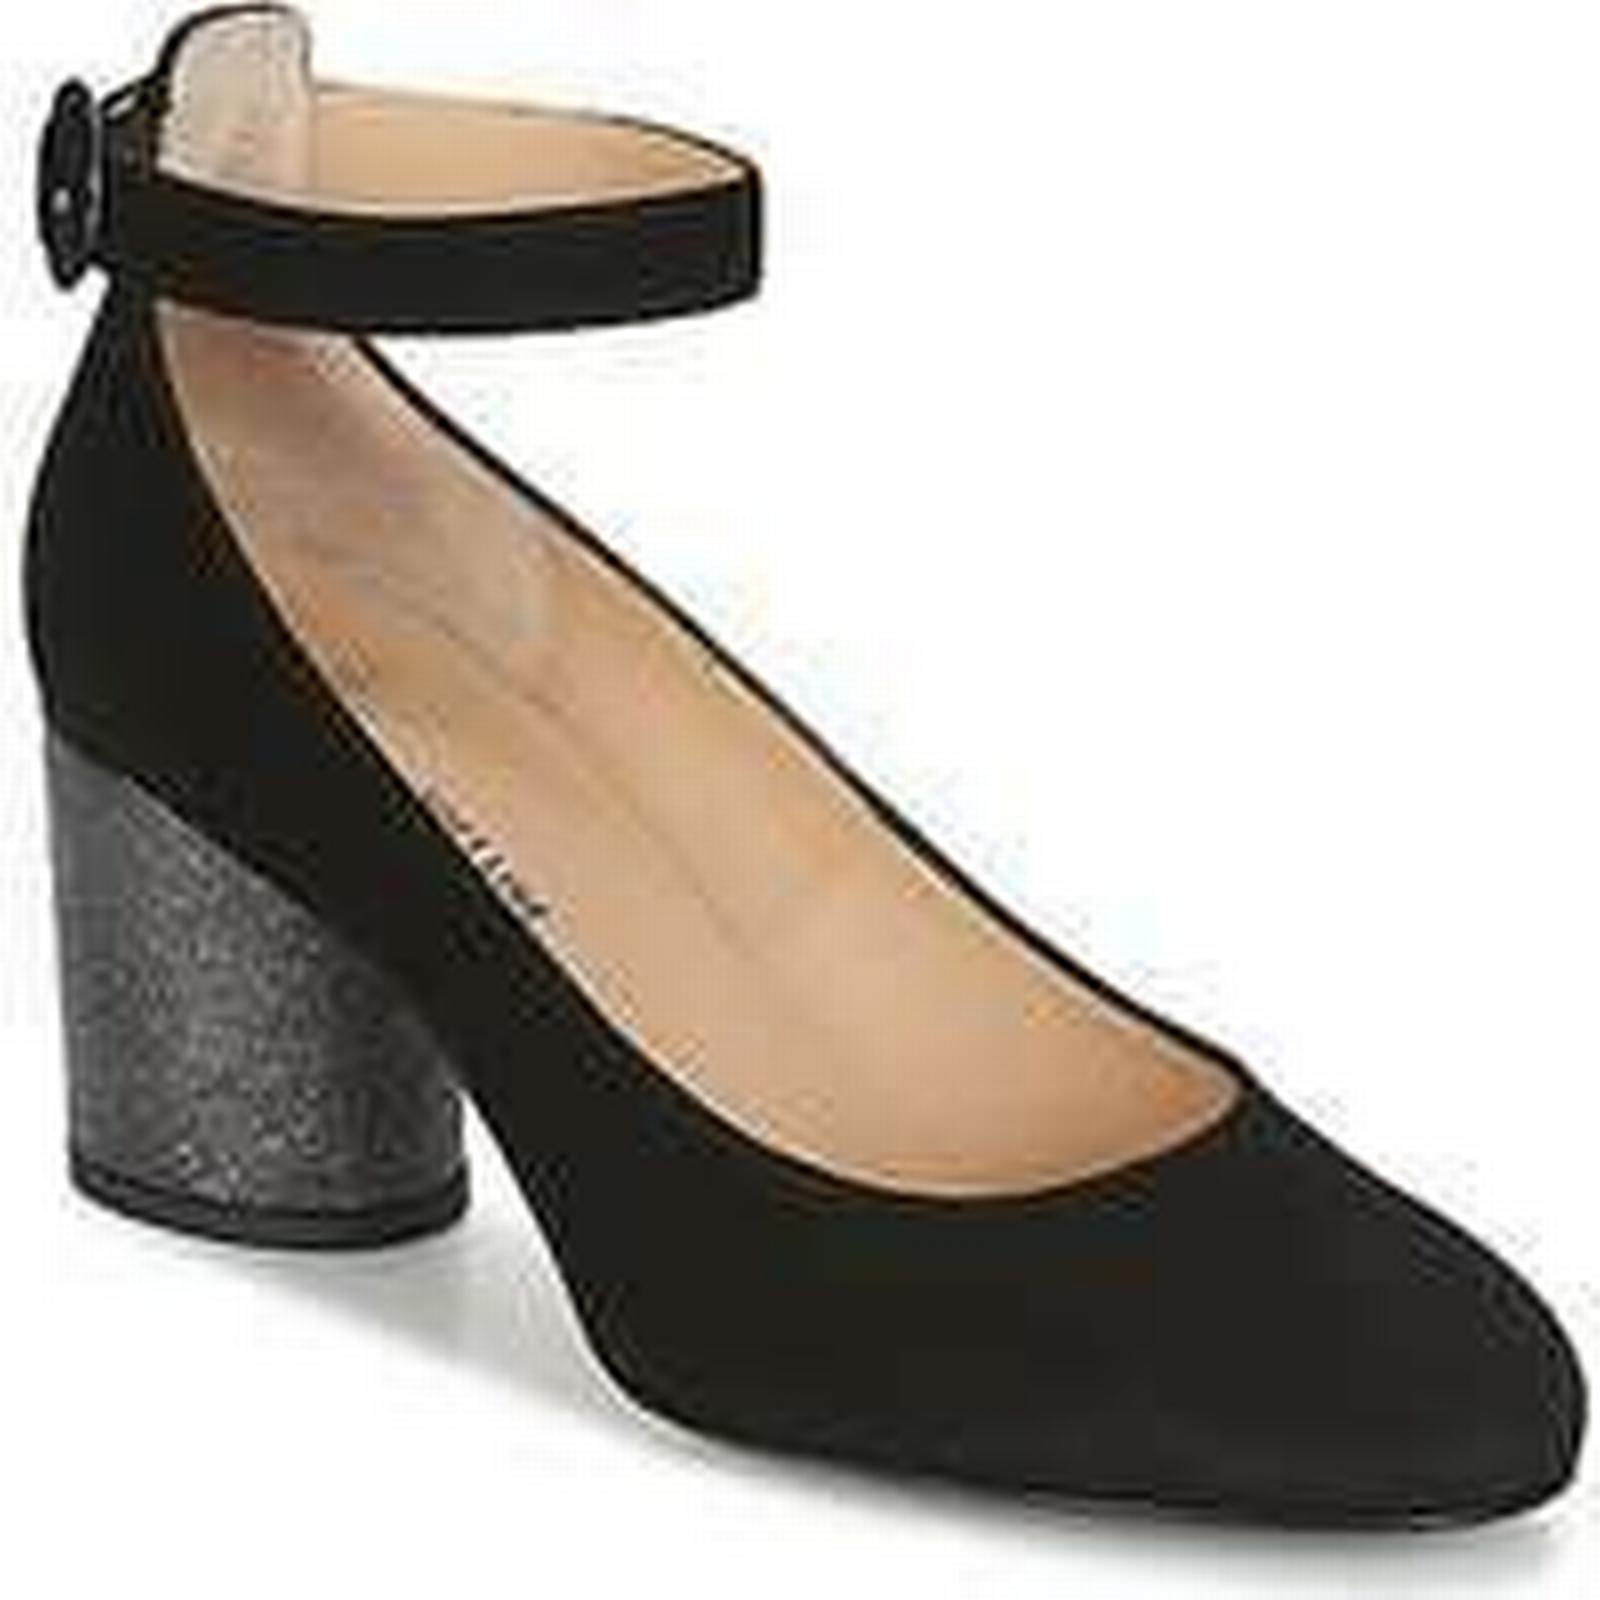 Spartoo.co.uk Shoes Perlato UNEPOTI women's Court Shoes Spartoo.co.uk in Black aeb155